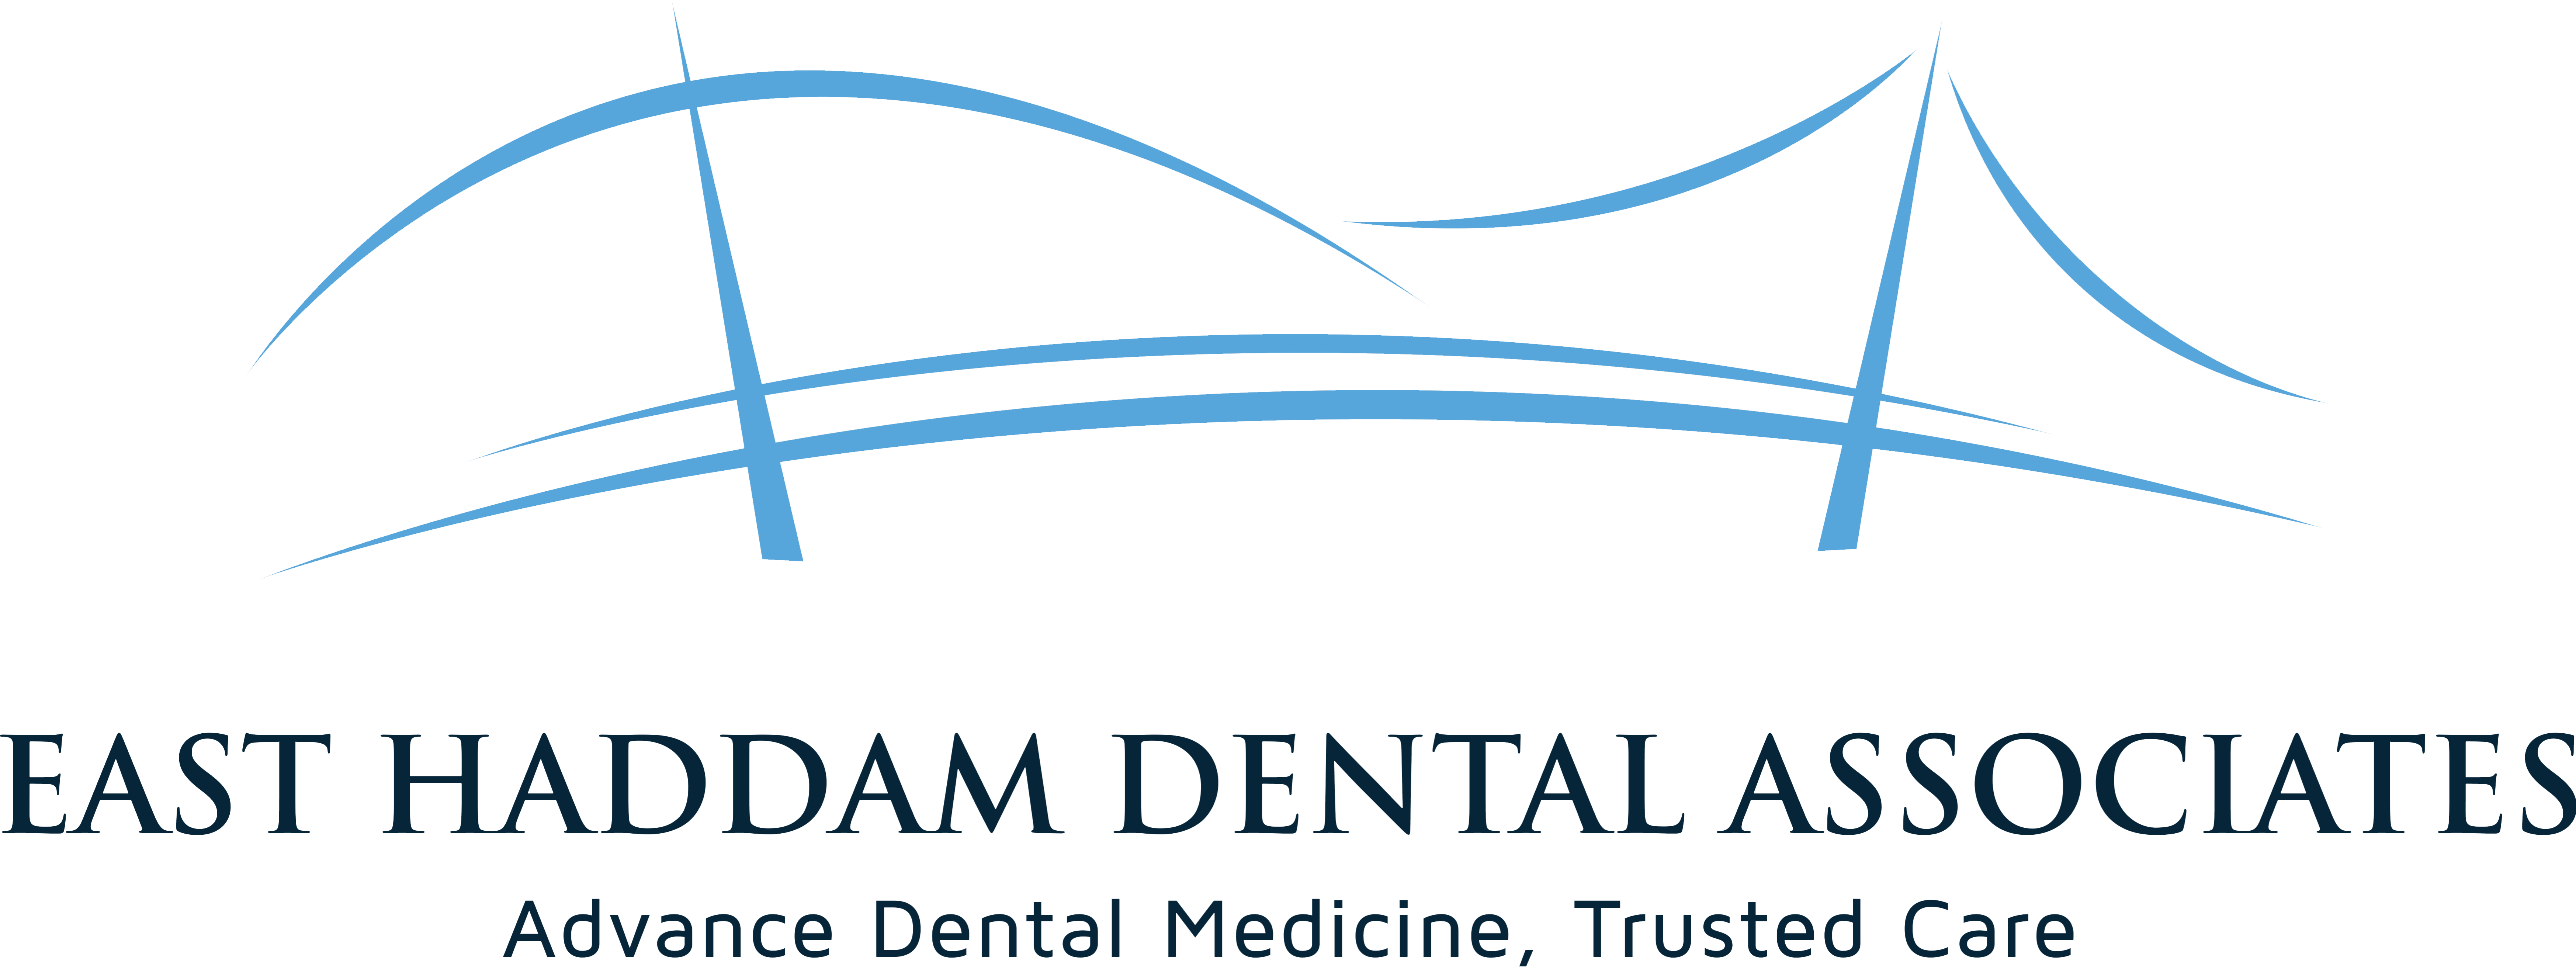 East Haddam Dental Associates